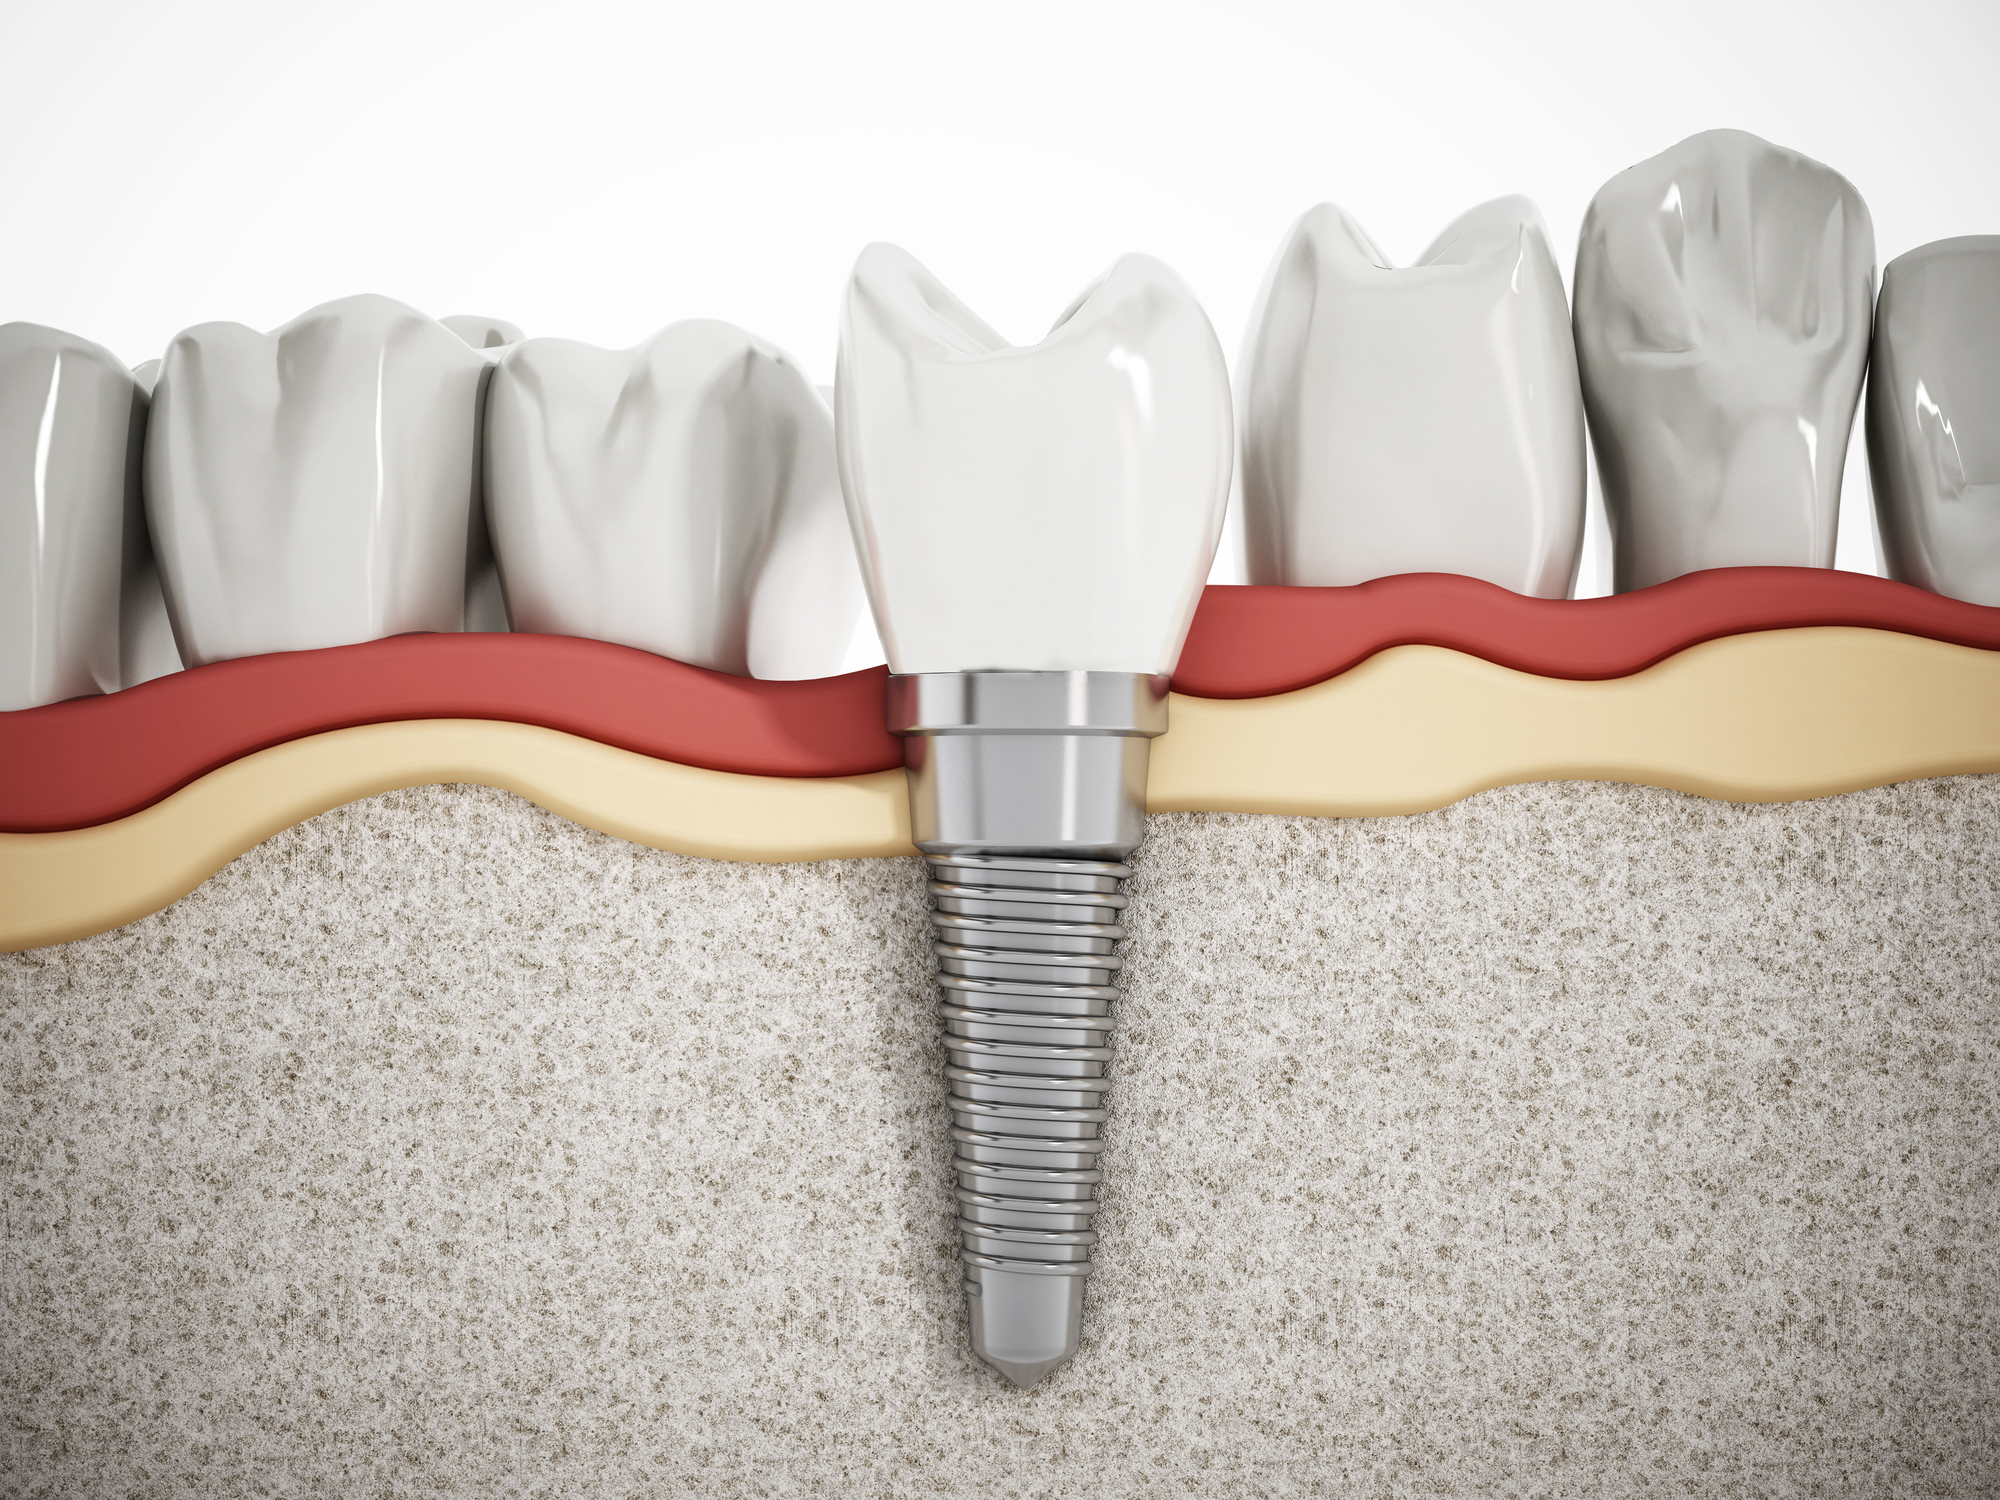 How do dental implants in Boca Raton compare to bridges?